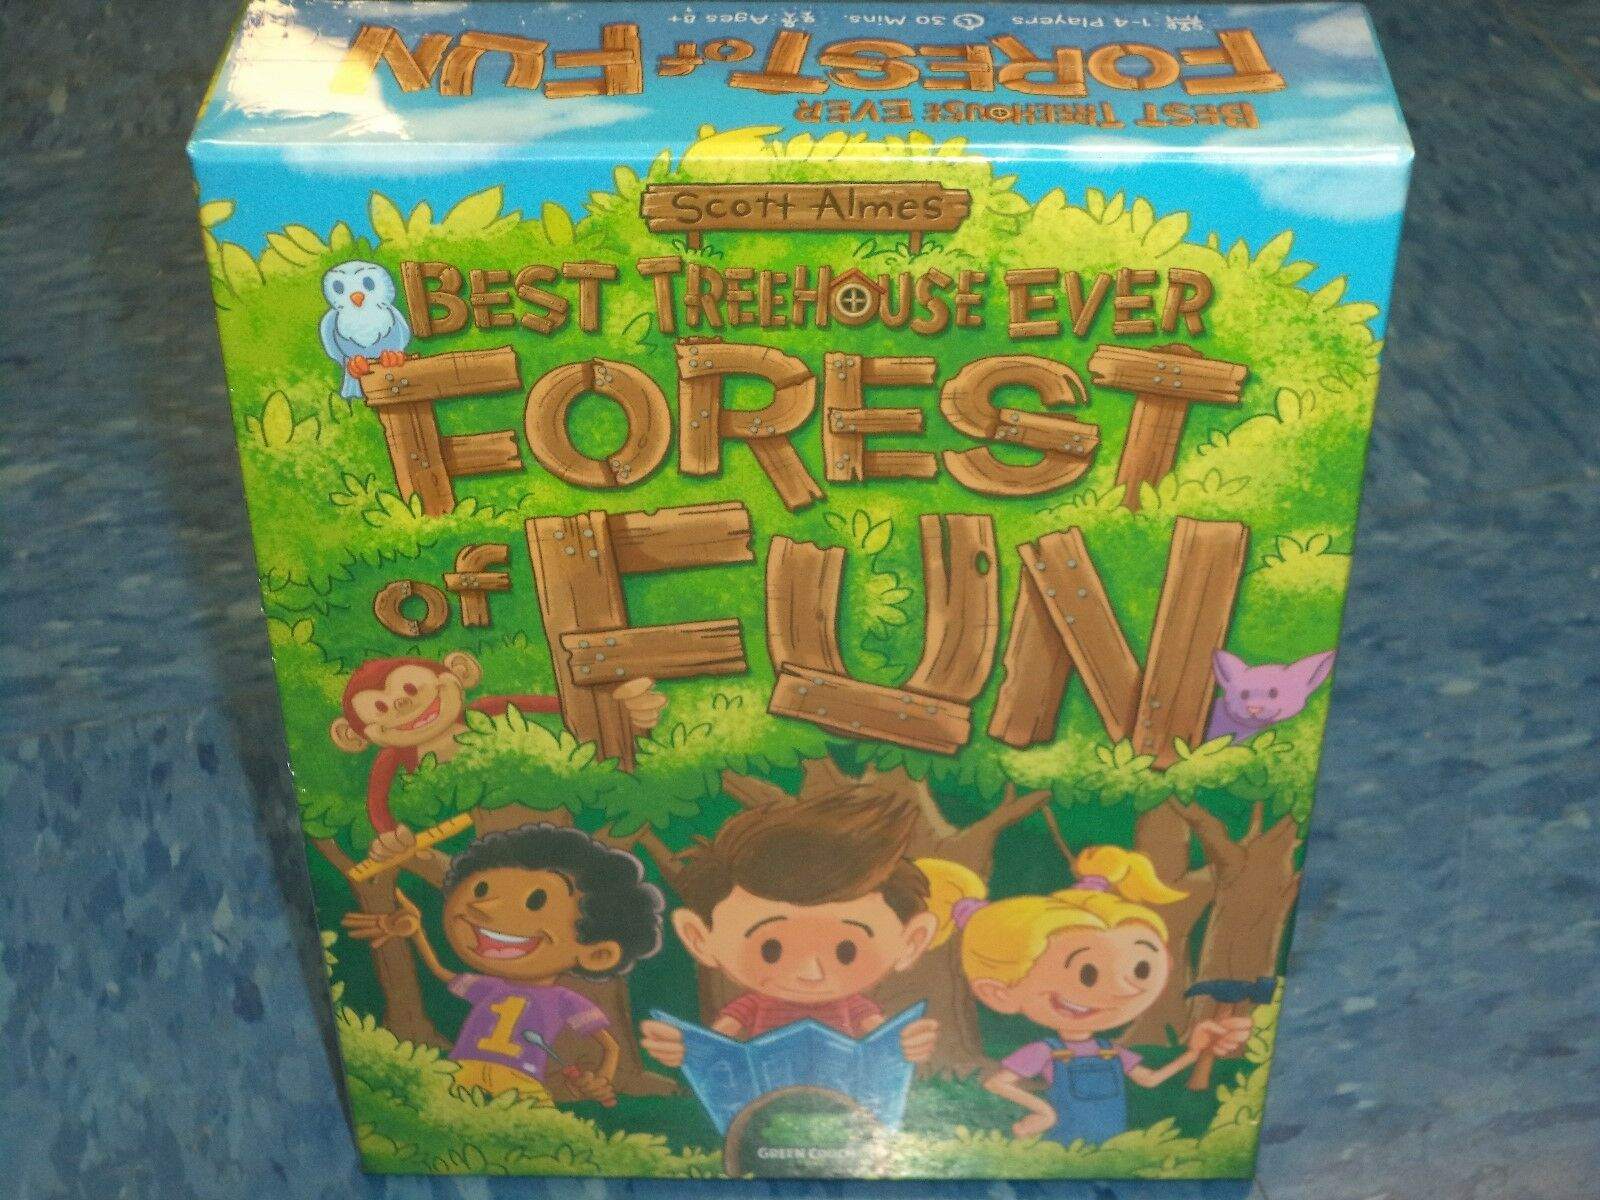 Best Treehouse Ever Ever Ever  Forest of Fun -Grün Couch Games Board Game New 22f0e7